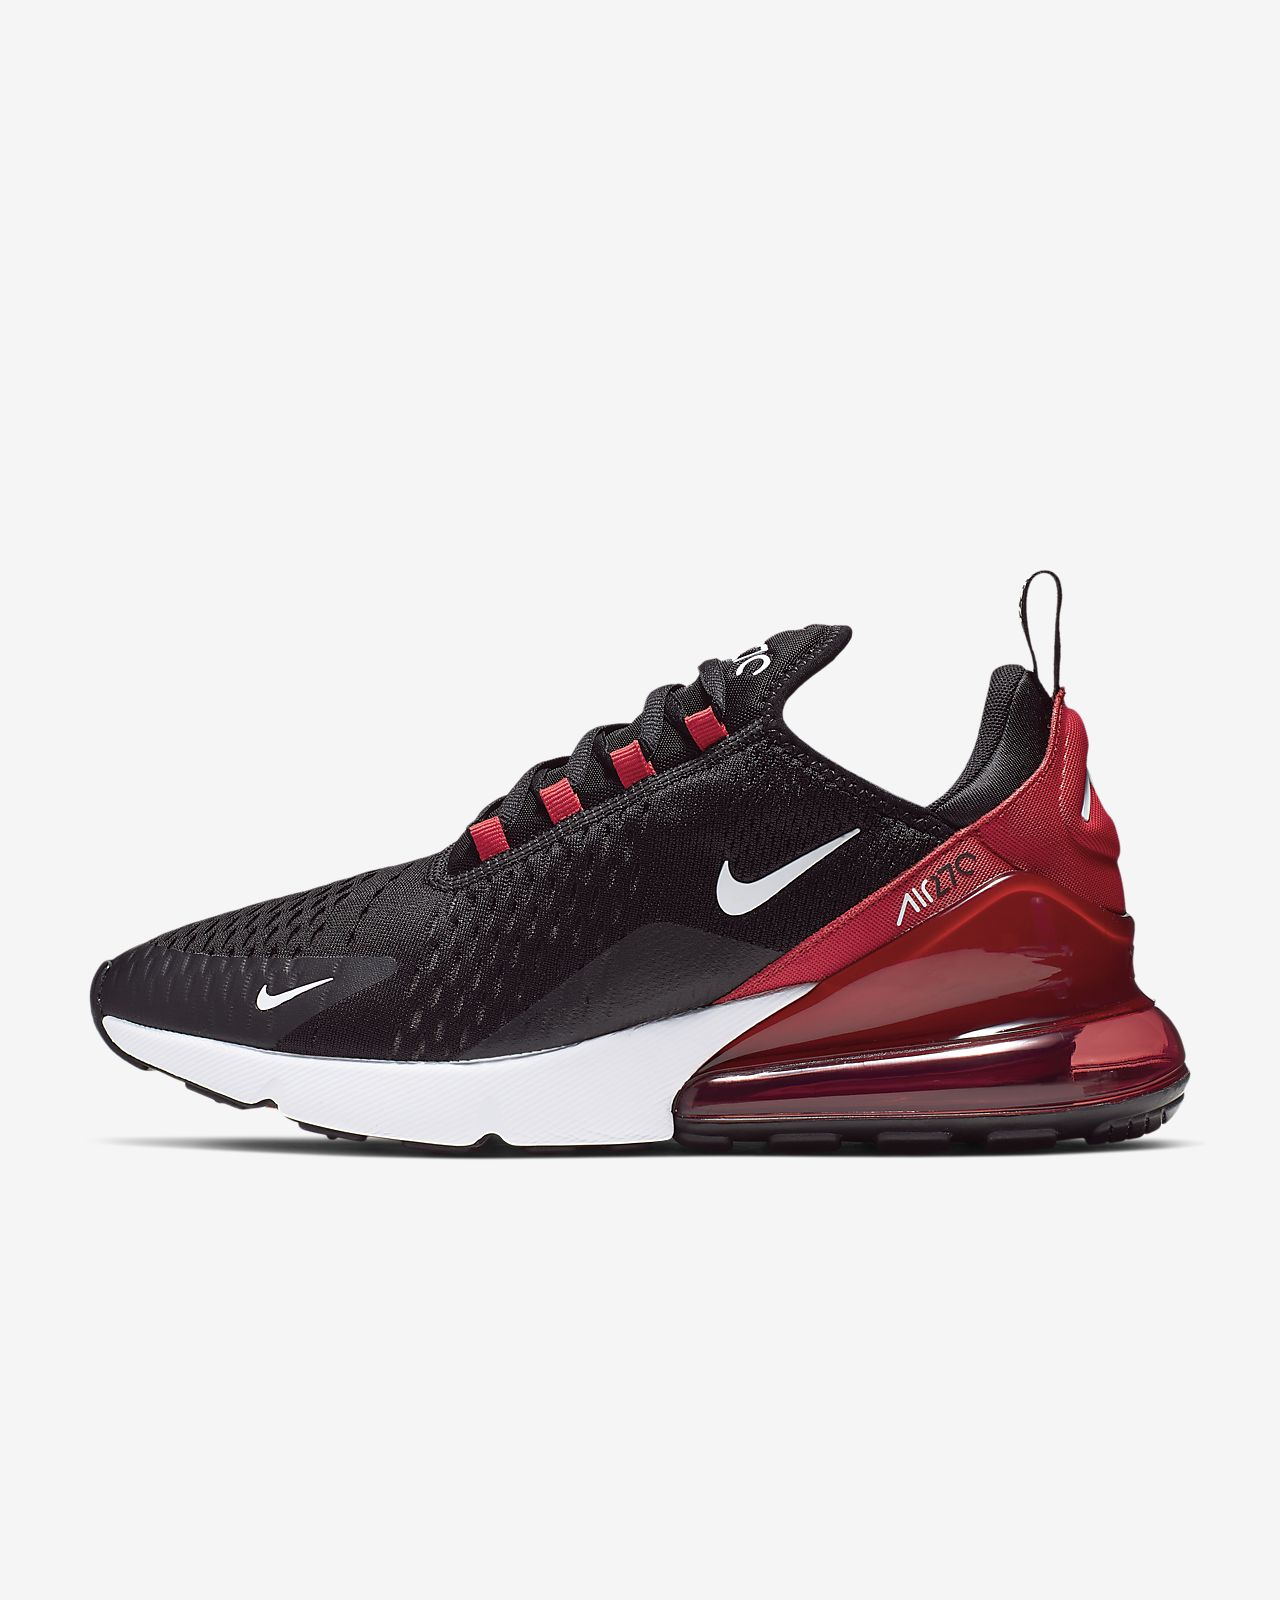 cfb119bfed7 Nike Air Max 270 Men s Shoe. Nike.com GB